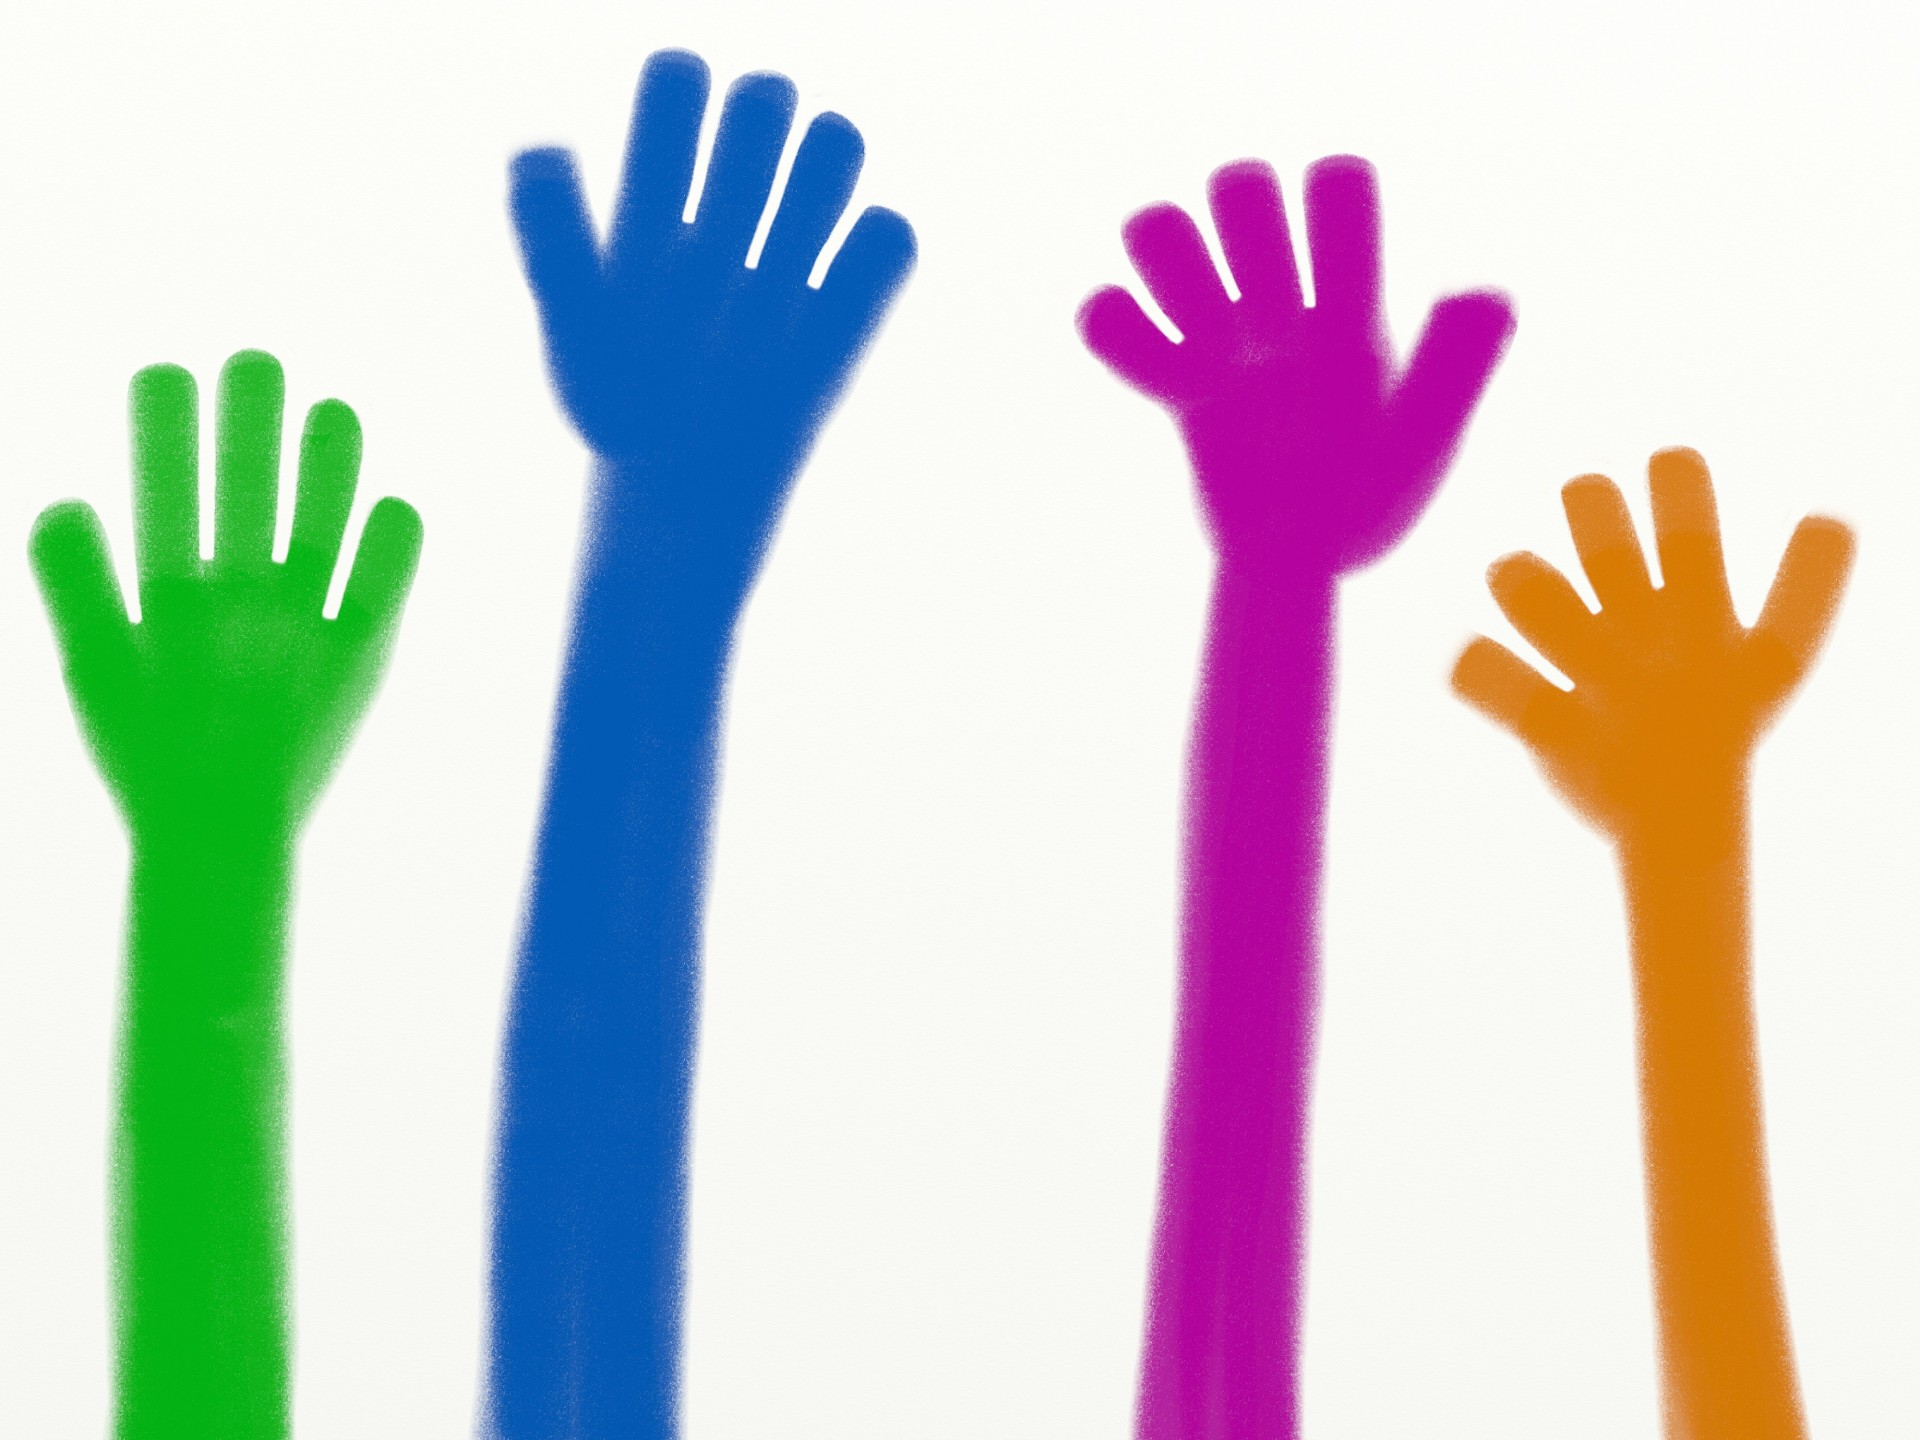 1920x1440 Hands Clipart Free Stock Photo